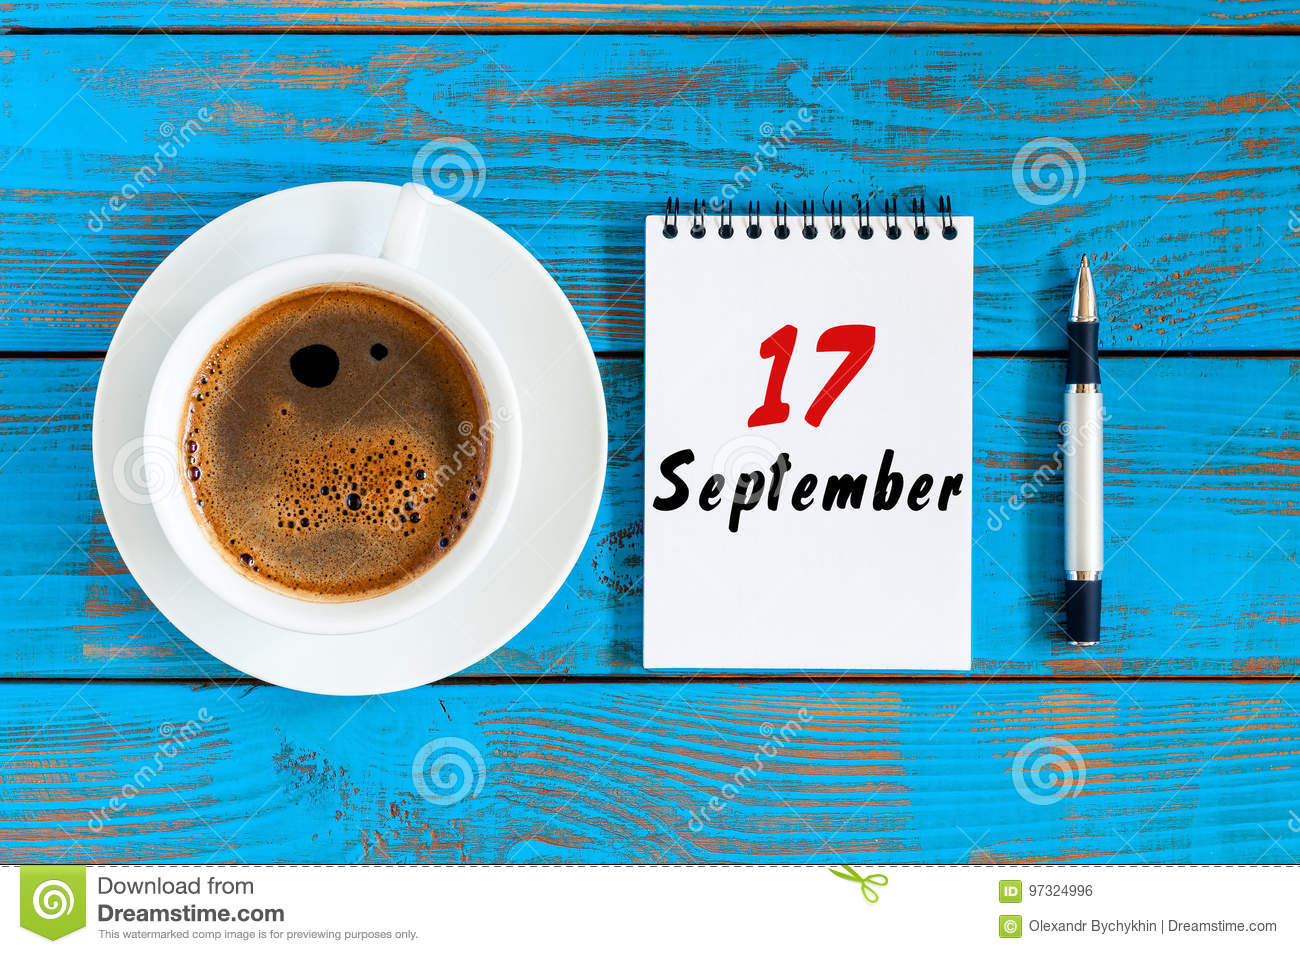 September 17th. Day 17 of month, loose-leaf calendar and coffee cup at Network Systems Analyst workplace background